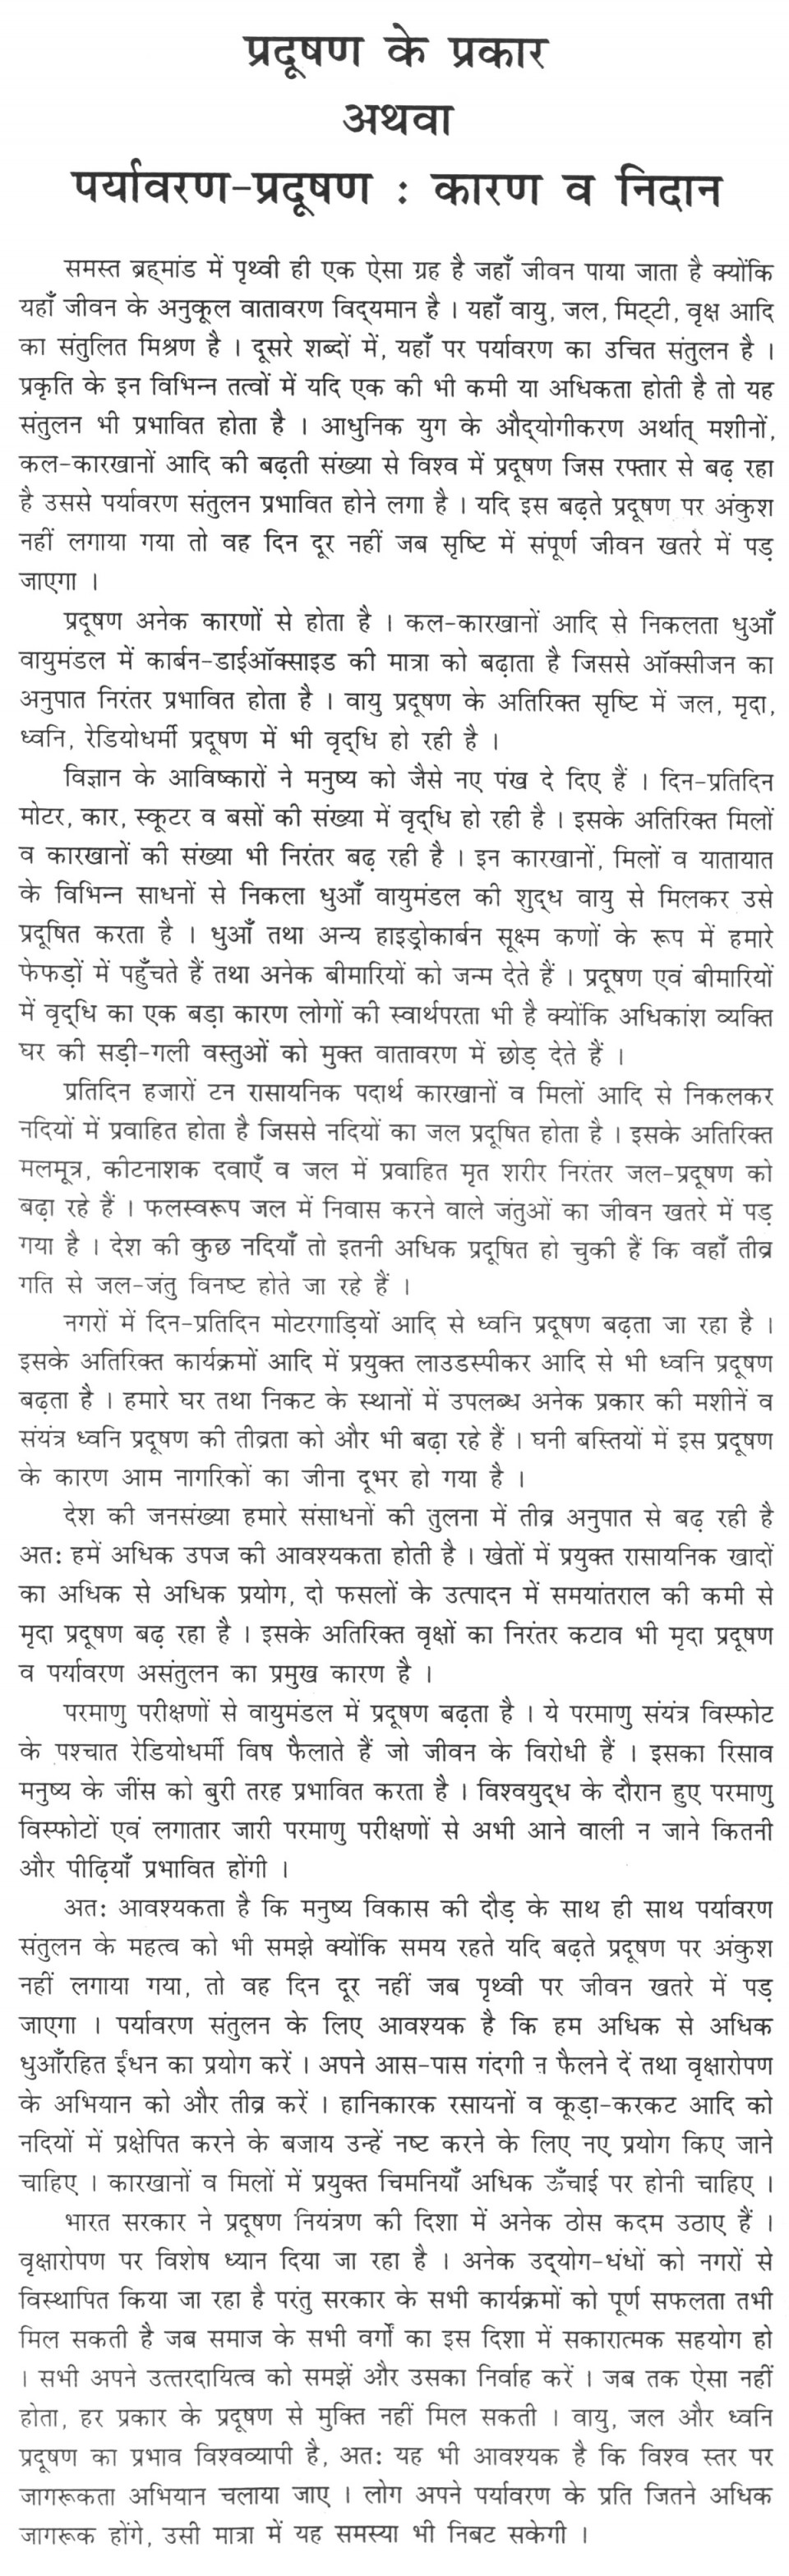 014 Good Habits Essay In Hindi Exceptional Habit Eating And Bad 960